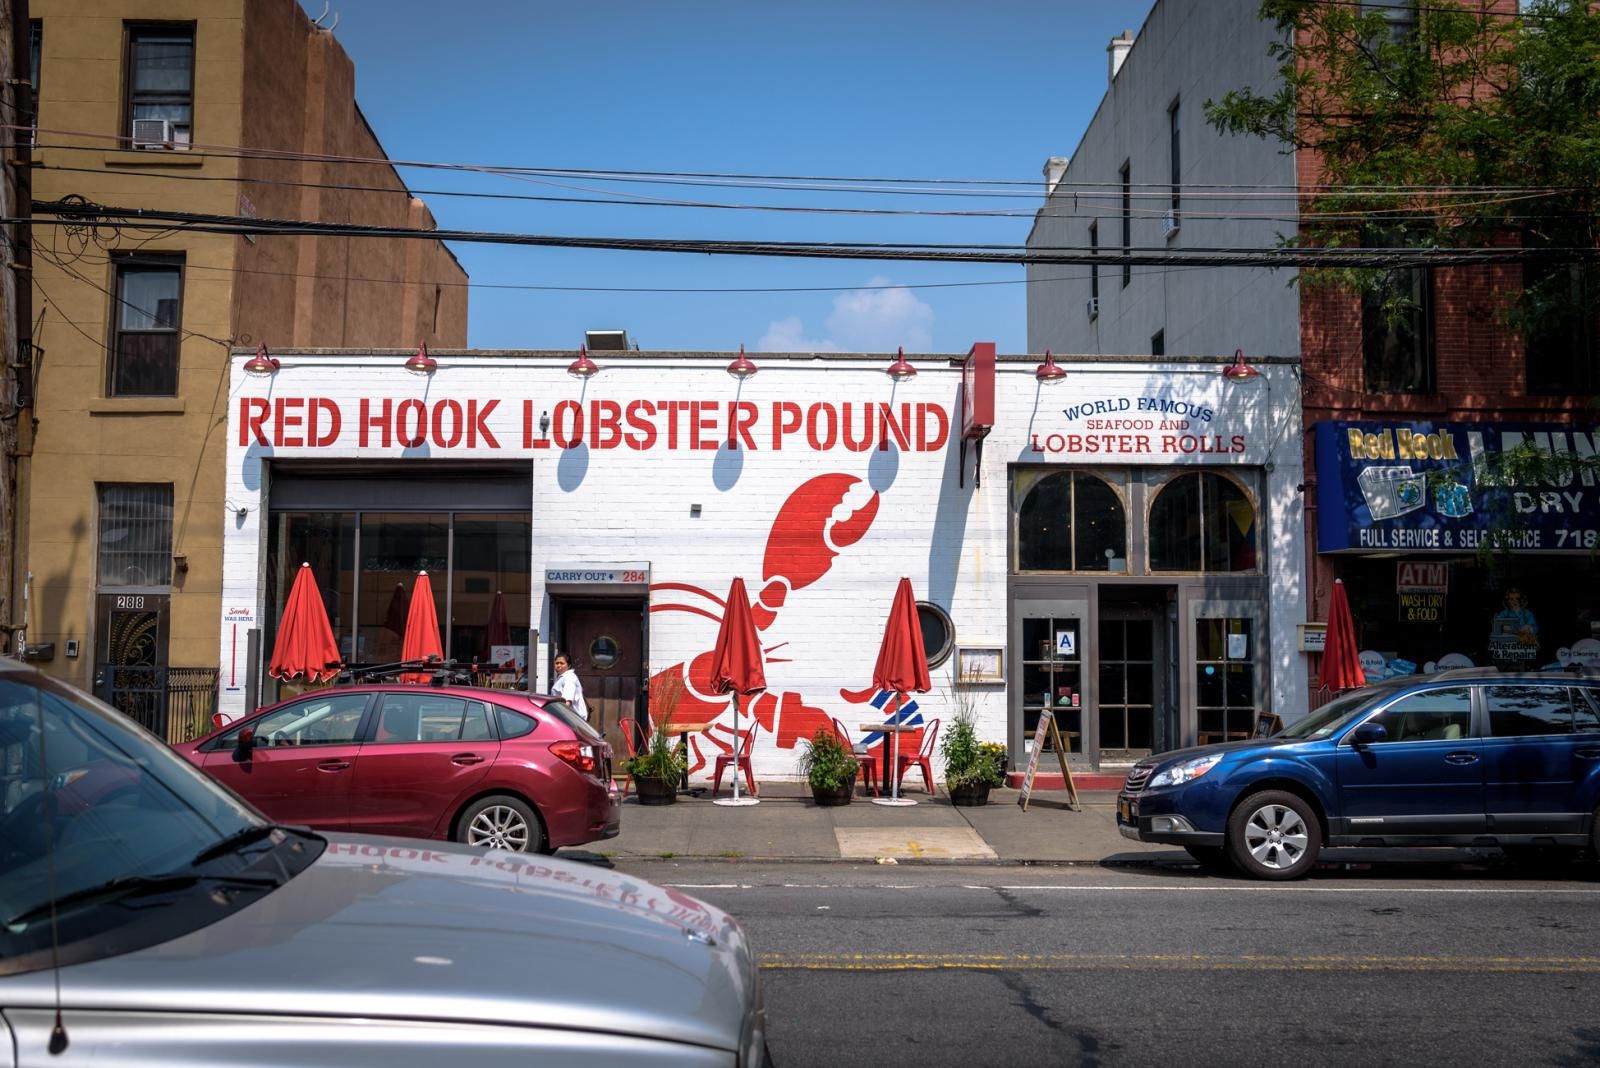 Red Hook Lobster Pound in Brooklyn